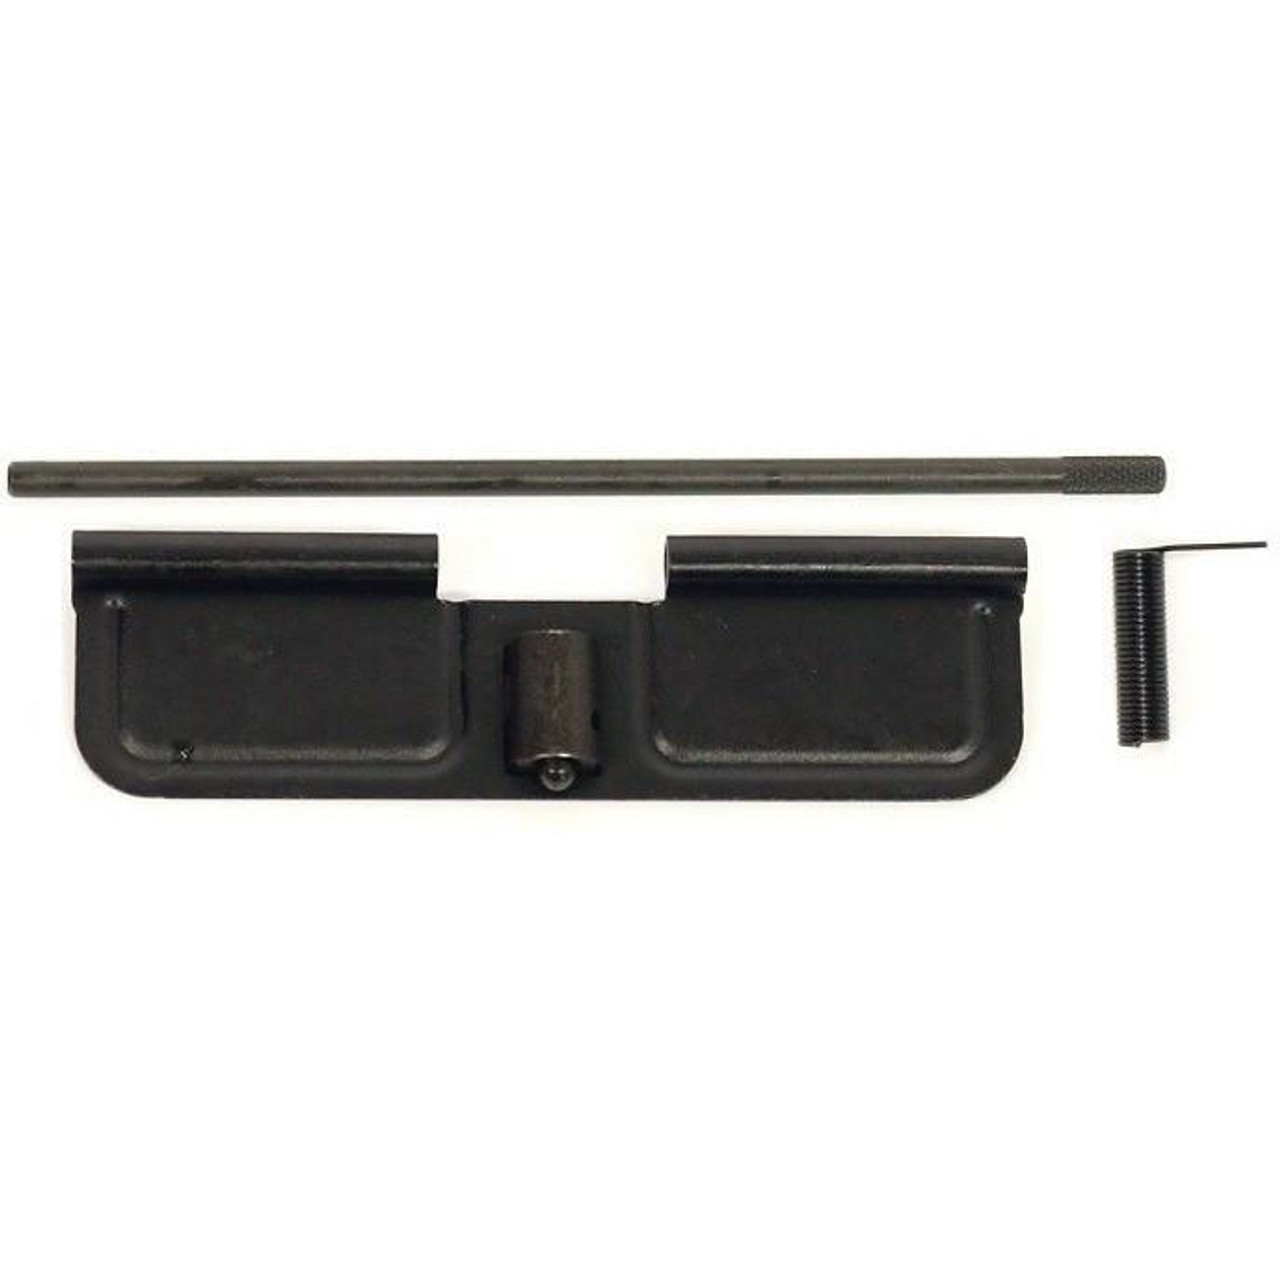 MDX Arms Dust Cover Kit